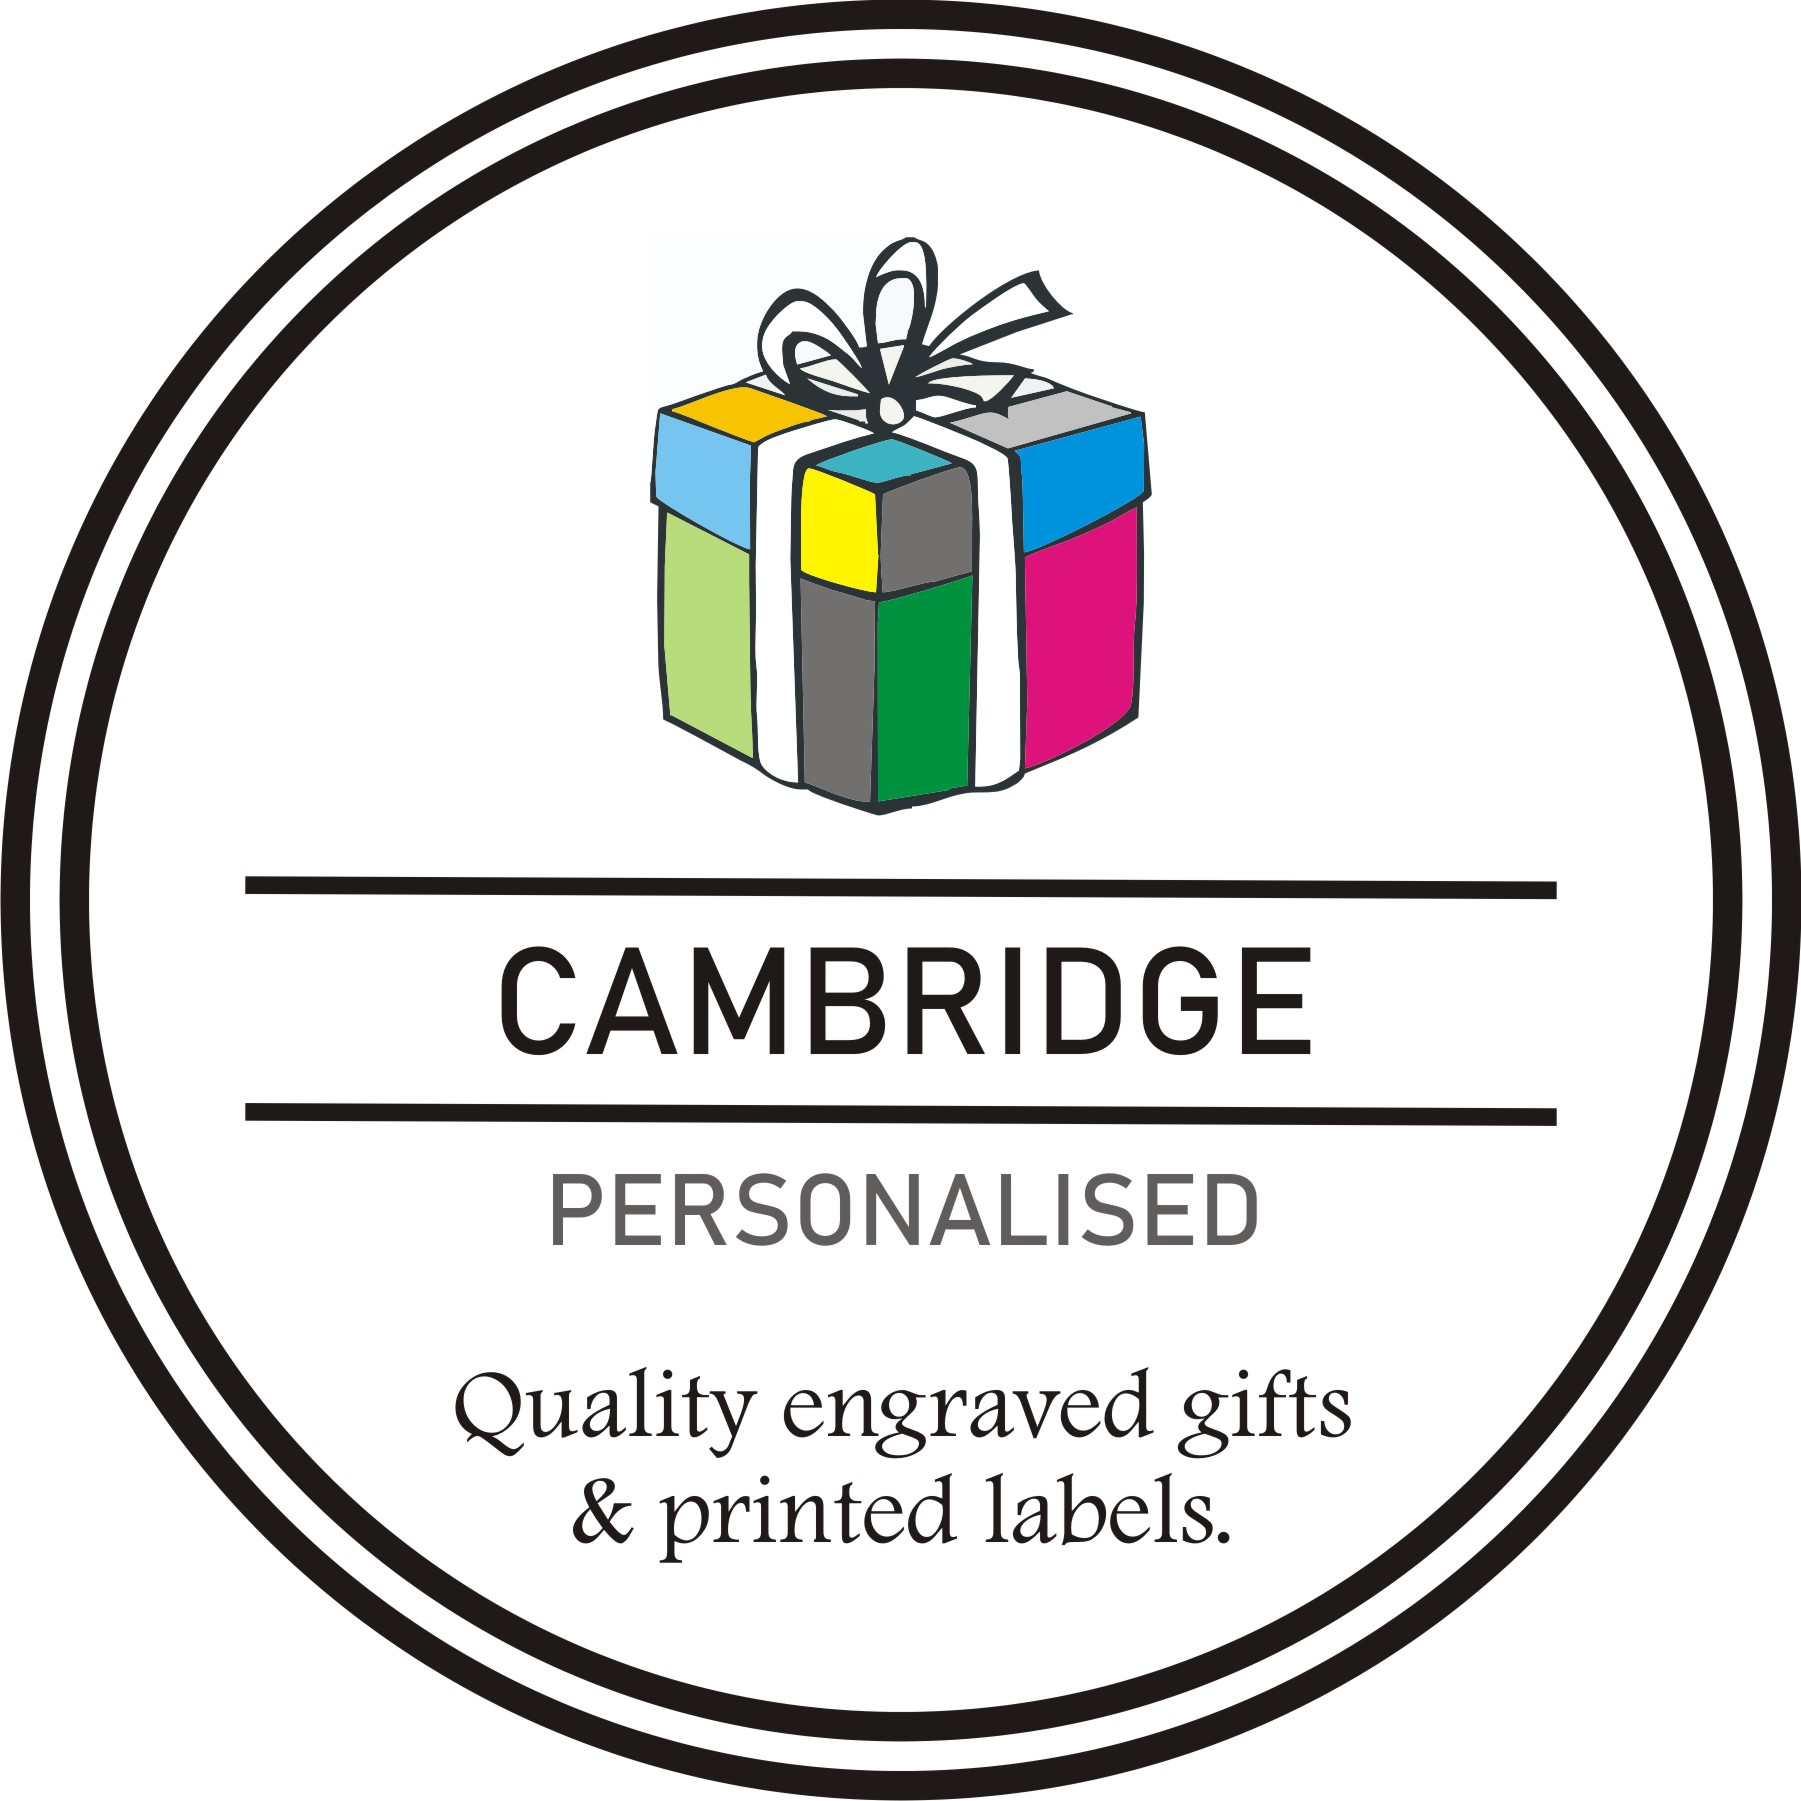 Cambridge Personalised